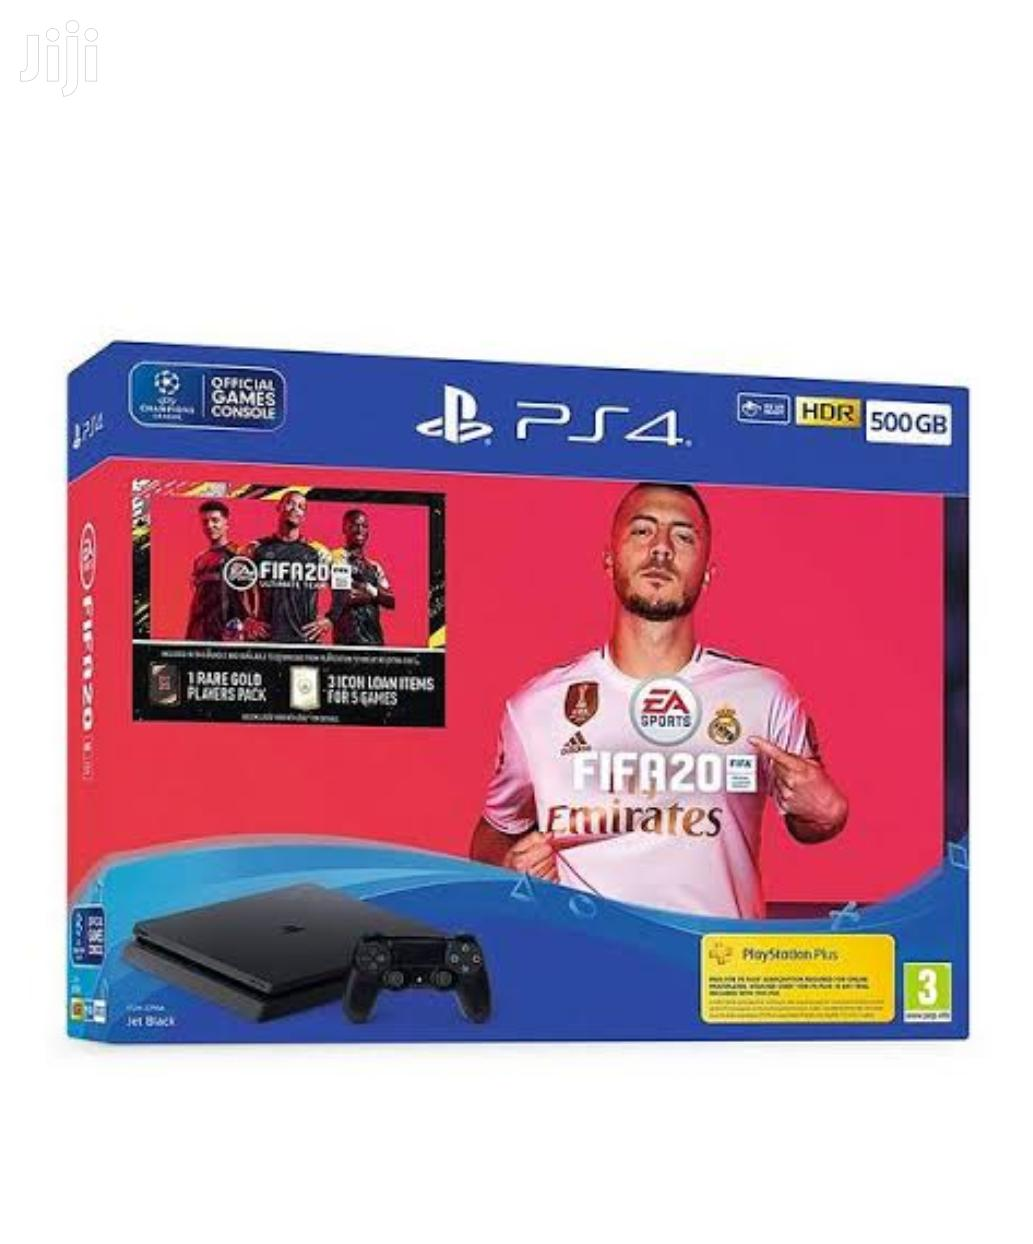 Ps 4 Console New